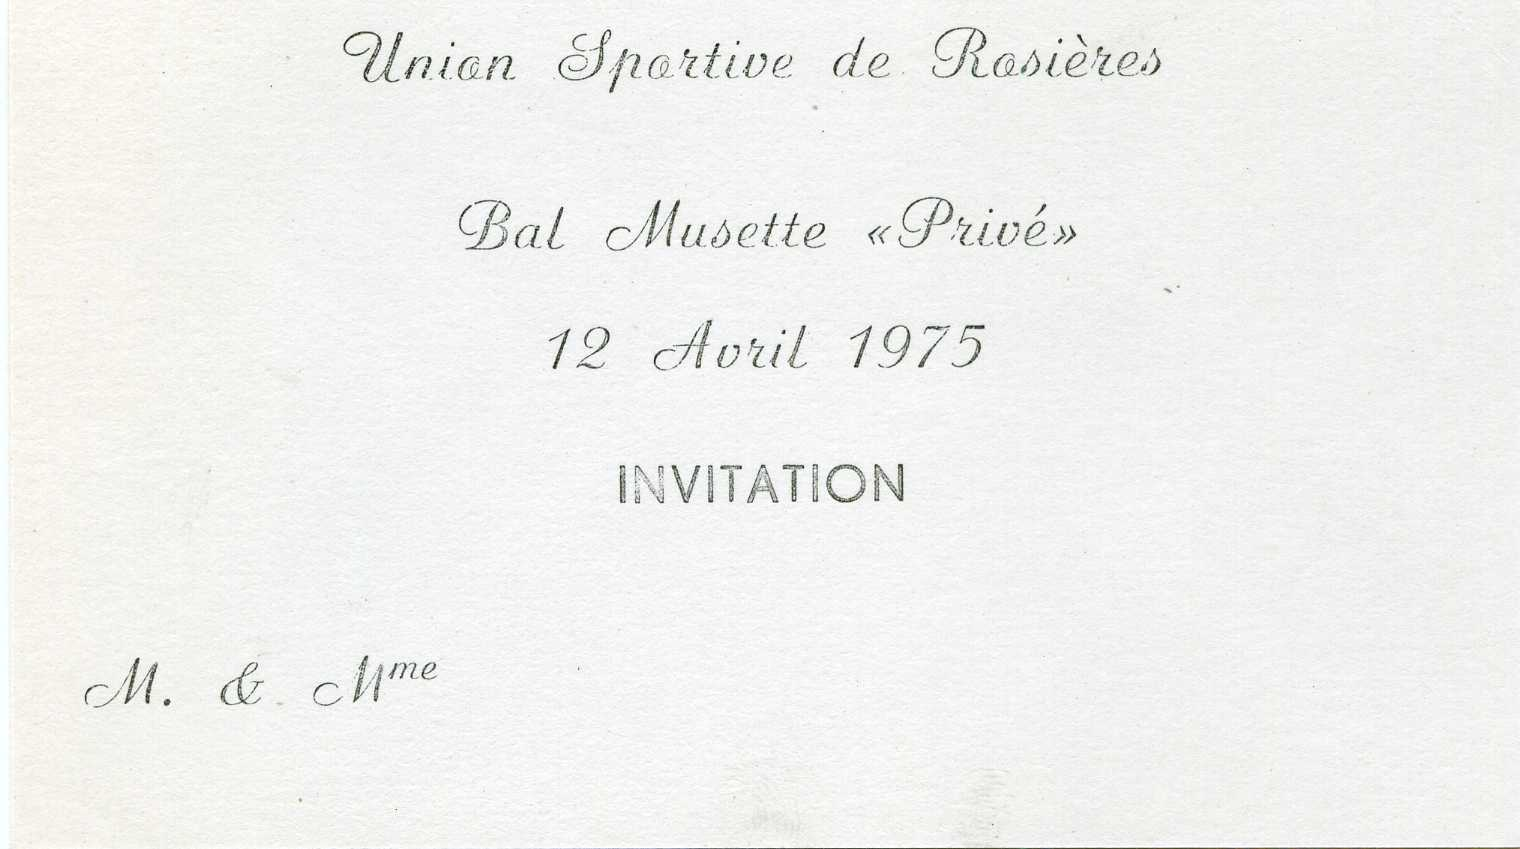 Invitation Bal Musette du 12 Avril 1975